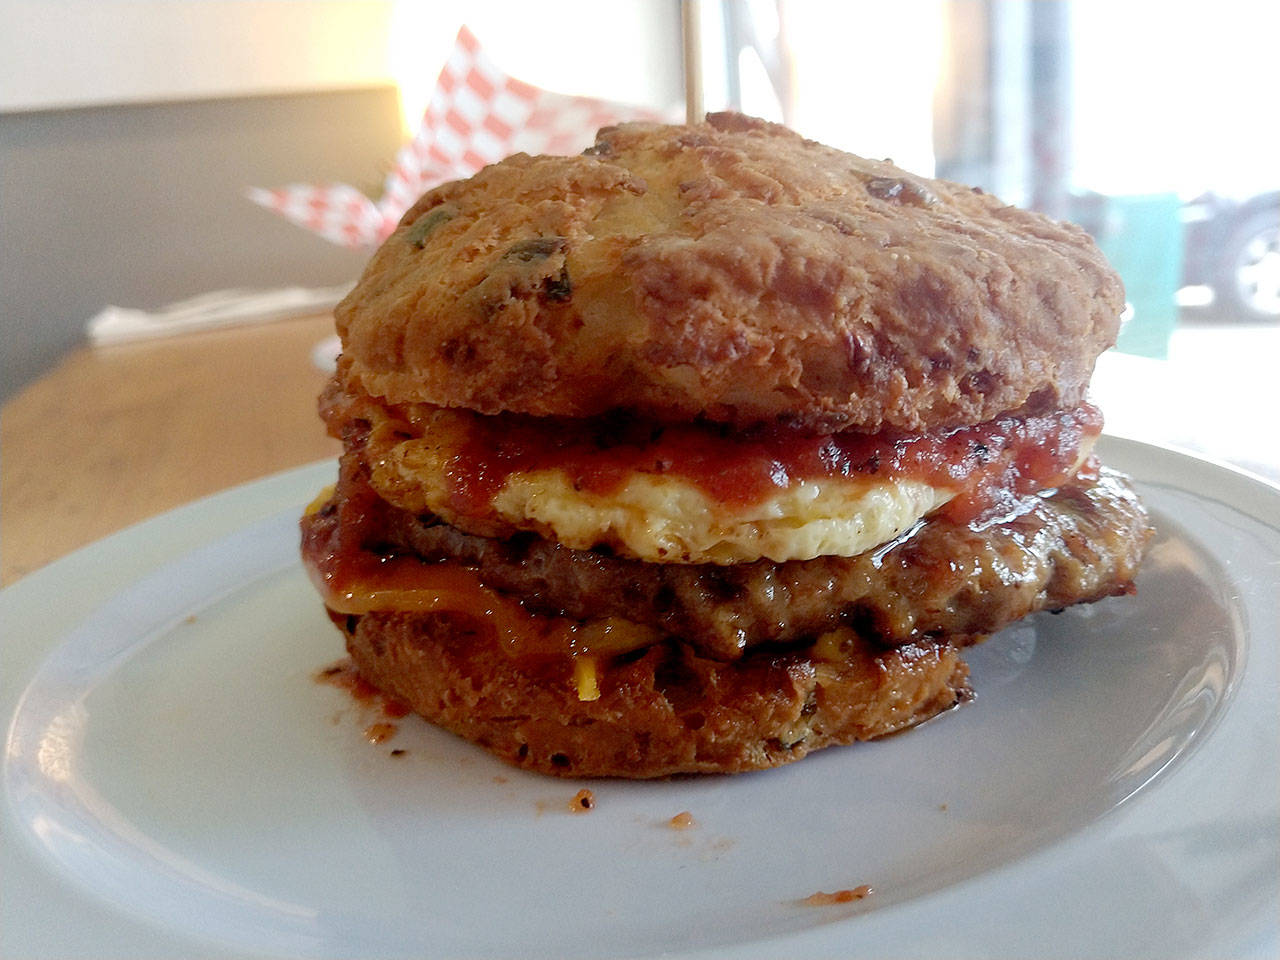 The Lumberjack sandwich at Biscuit & Bean in Lake Stevens is made with a sausage patty, egg, cheddar and tomato jam on either a buttermilk or cheddar onion biscuit. (Sara Bruestle/The Herald)